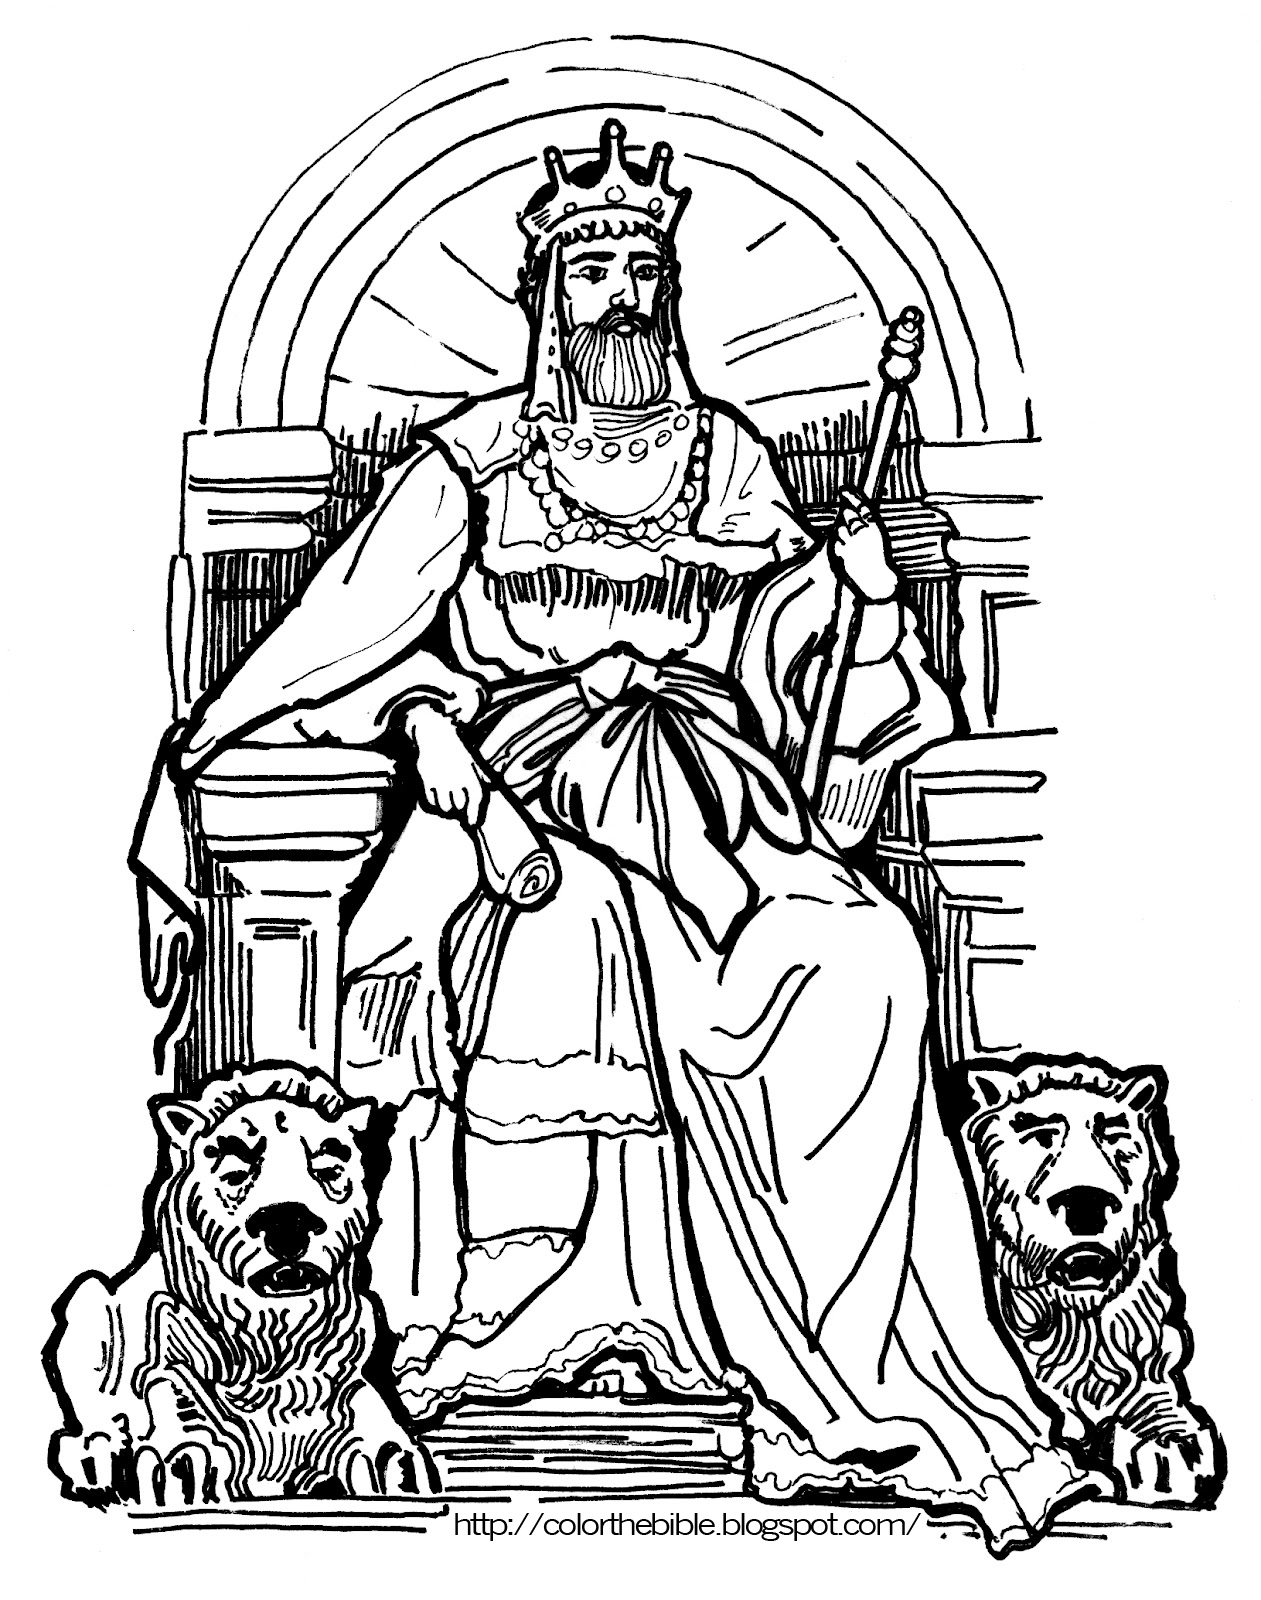 King on throne clipart black and white clip art stock King On Throne Clipart (93+ images in Collection) Page 2 clip art stock